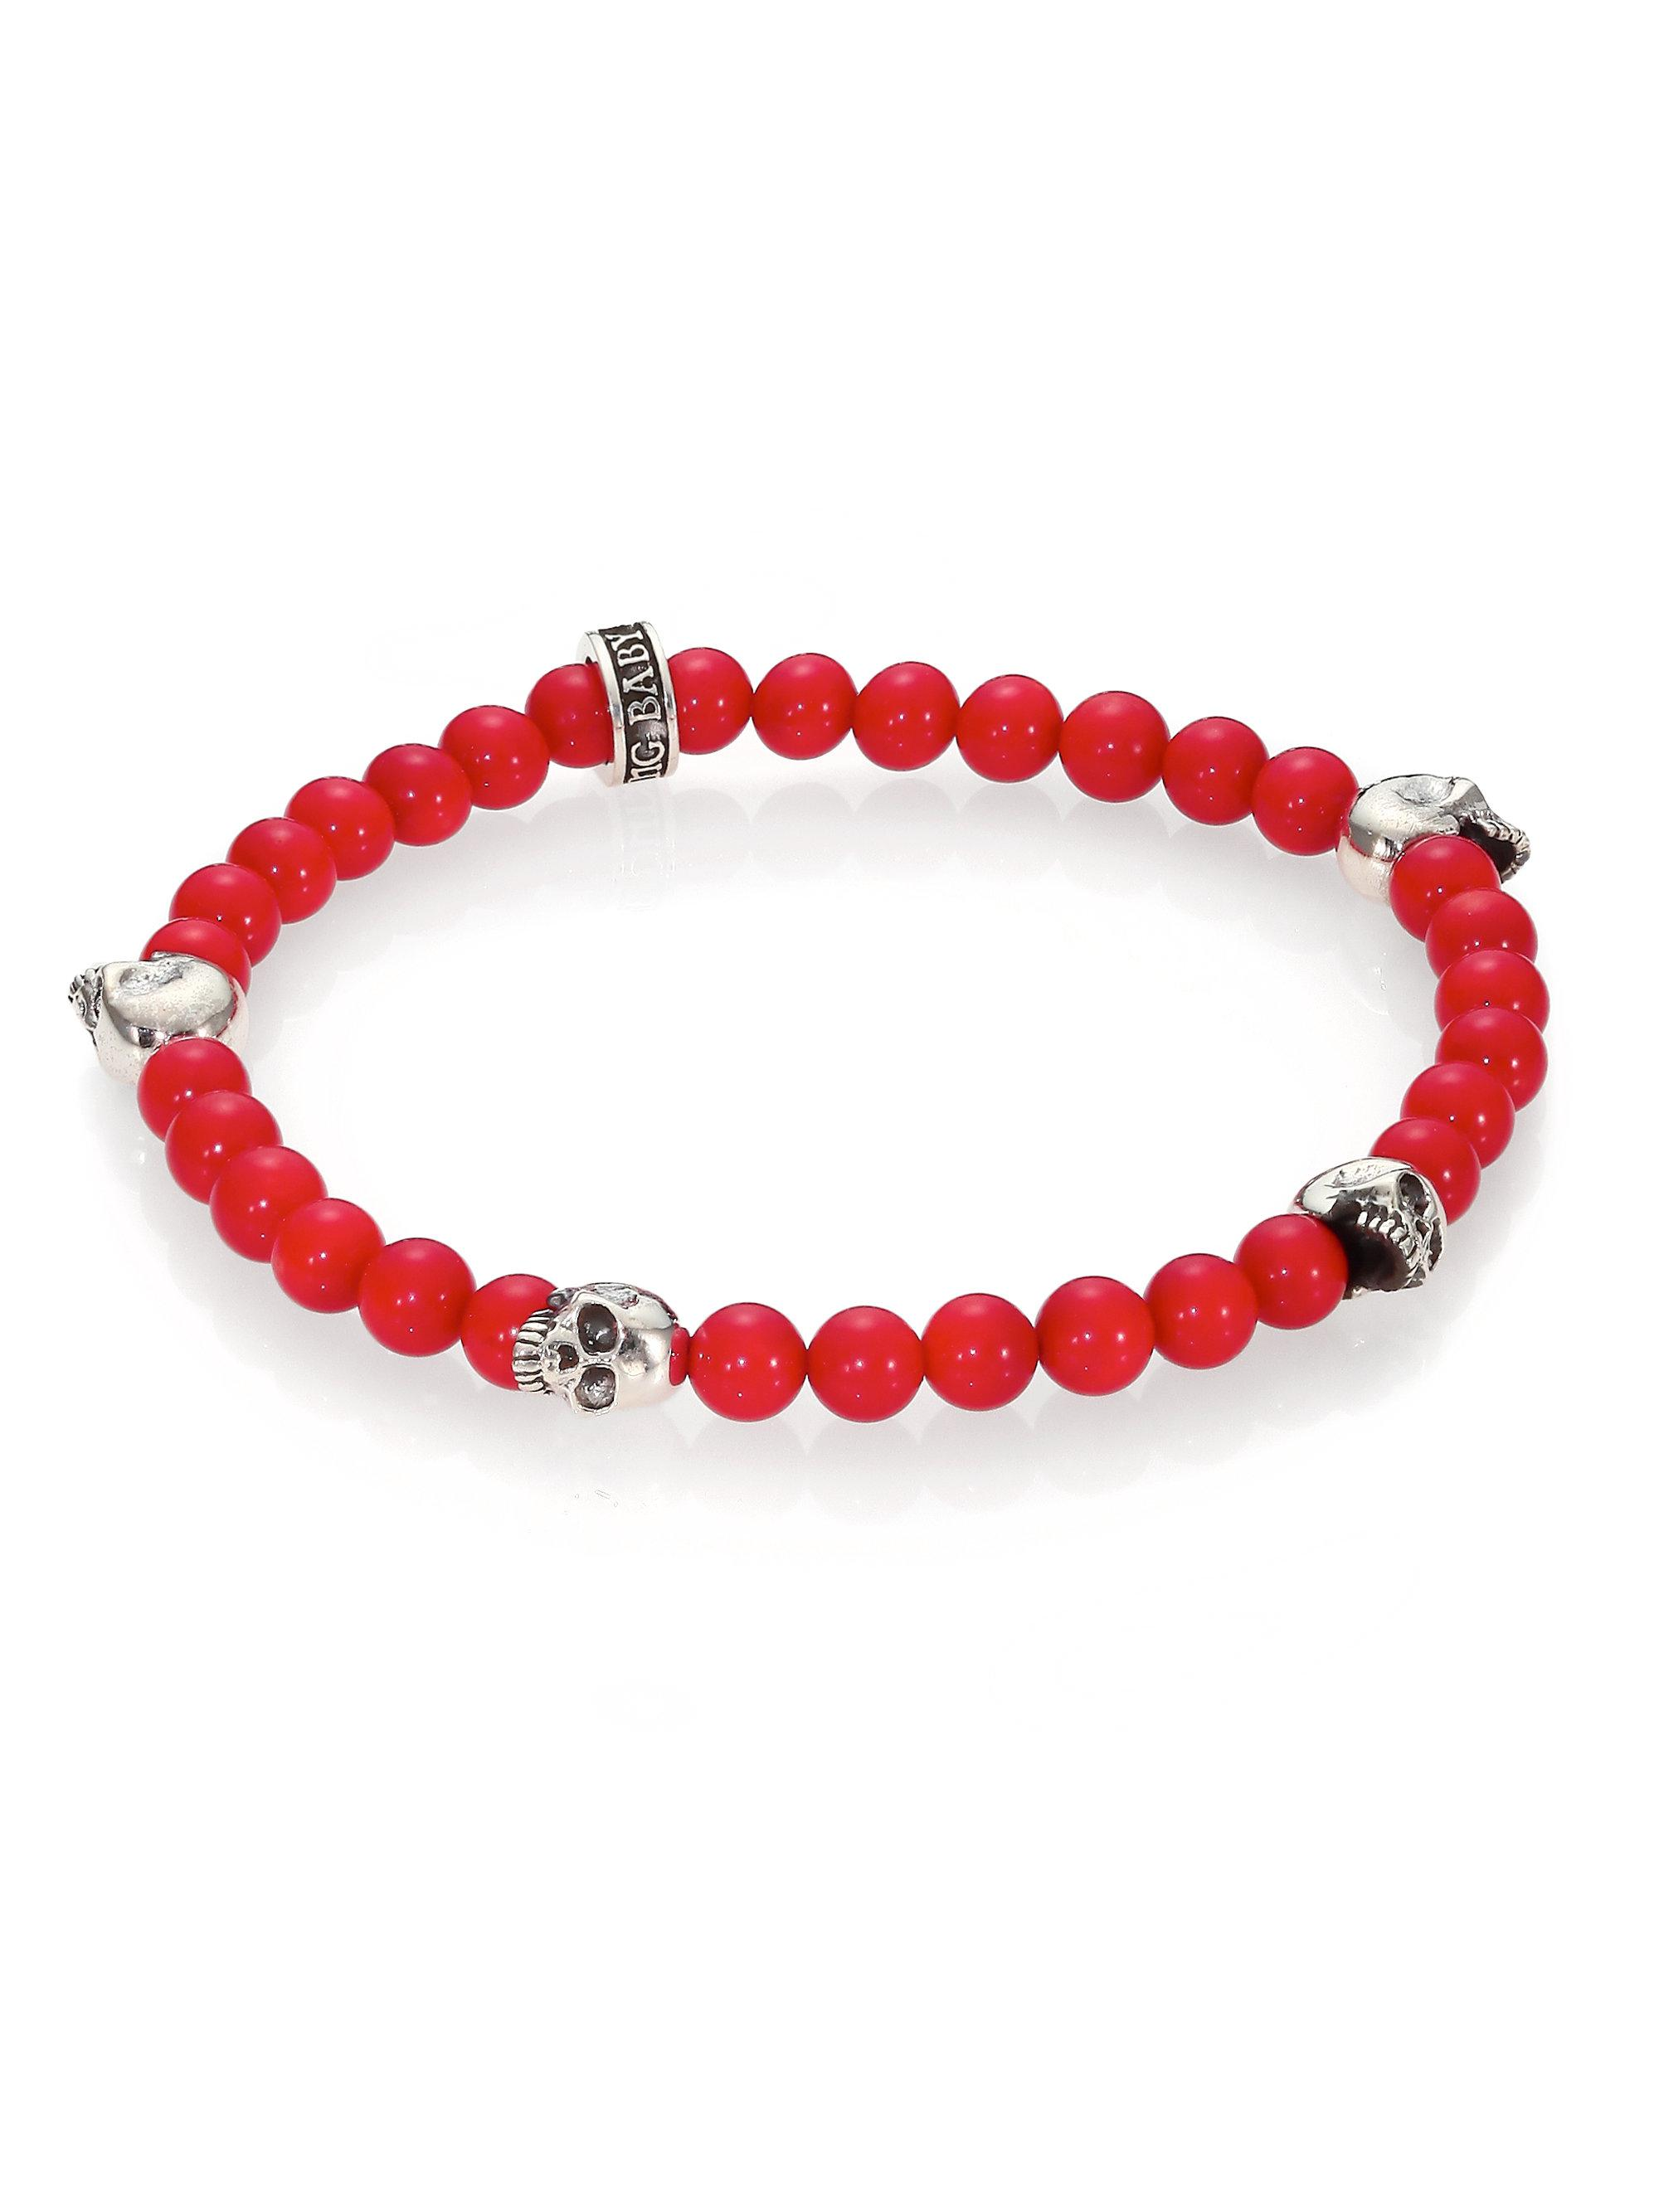 Lyst king baby studio red coral beaded bracelet in red for King baby jewelry sale